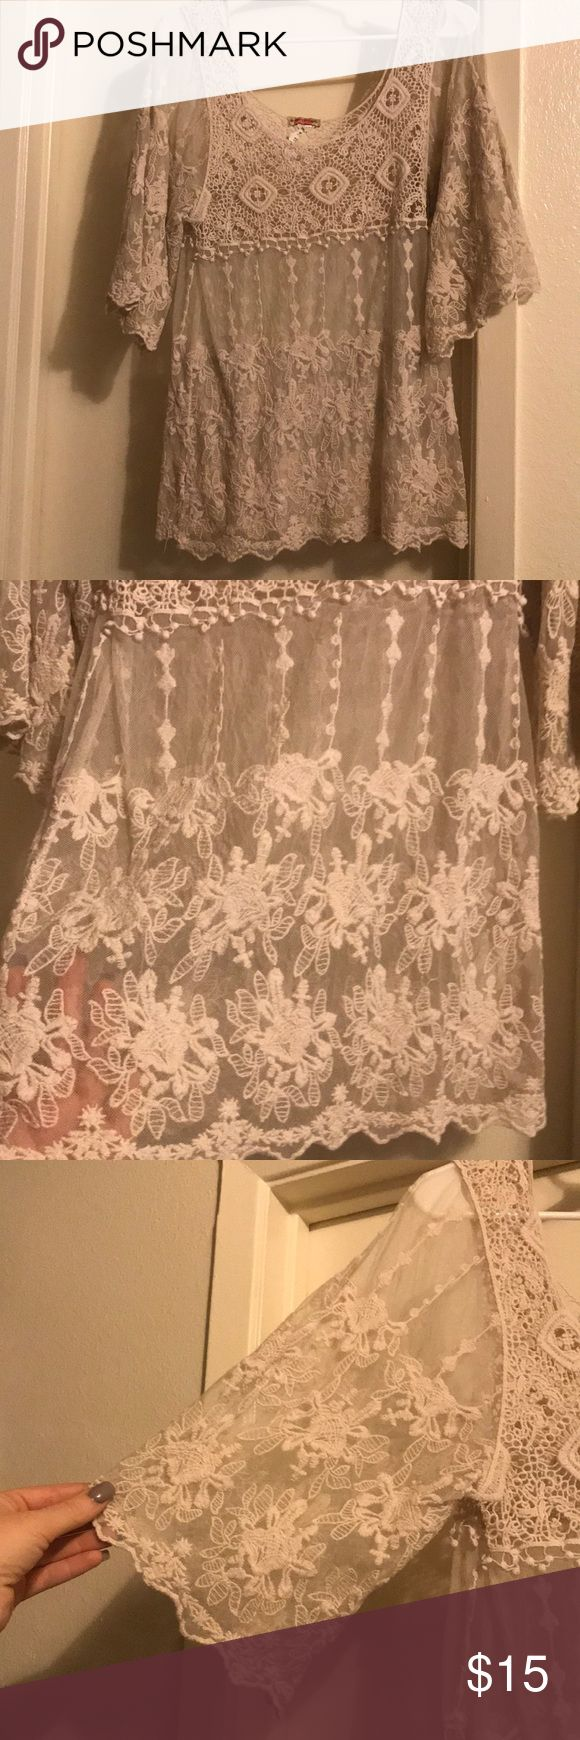 Adorable lace overlay top! Dressy cute Super adorable over lay goes perfect with any outfit Body Central Tops Tees - Short Sleeve